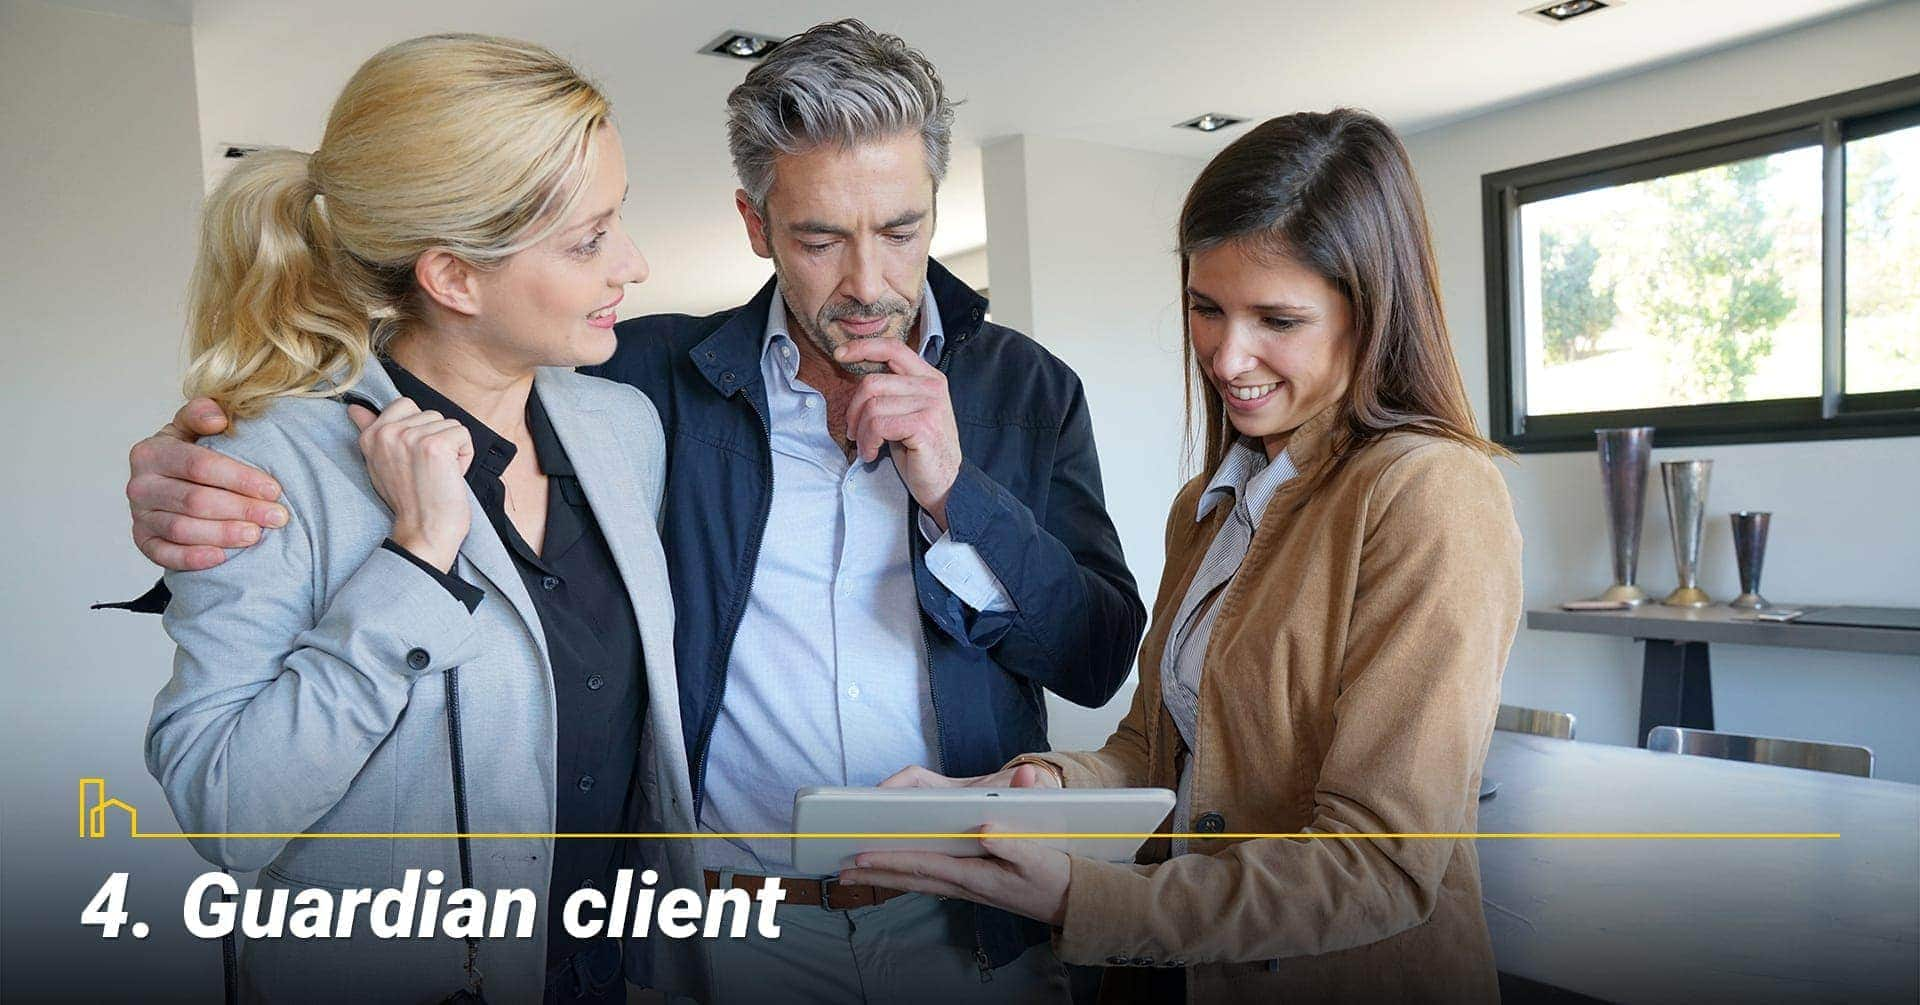 Guardian client, reserved client